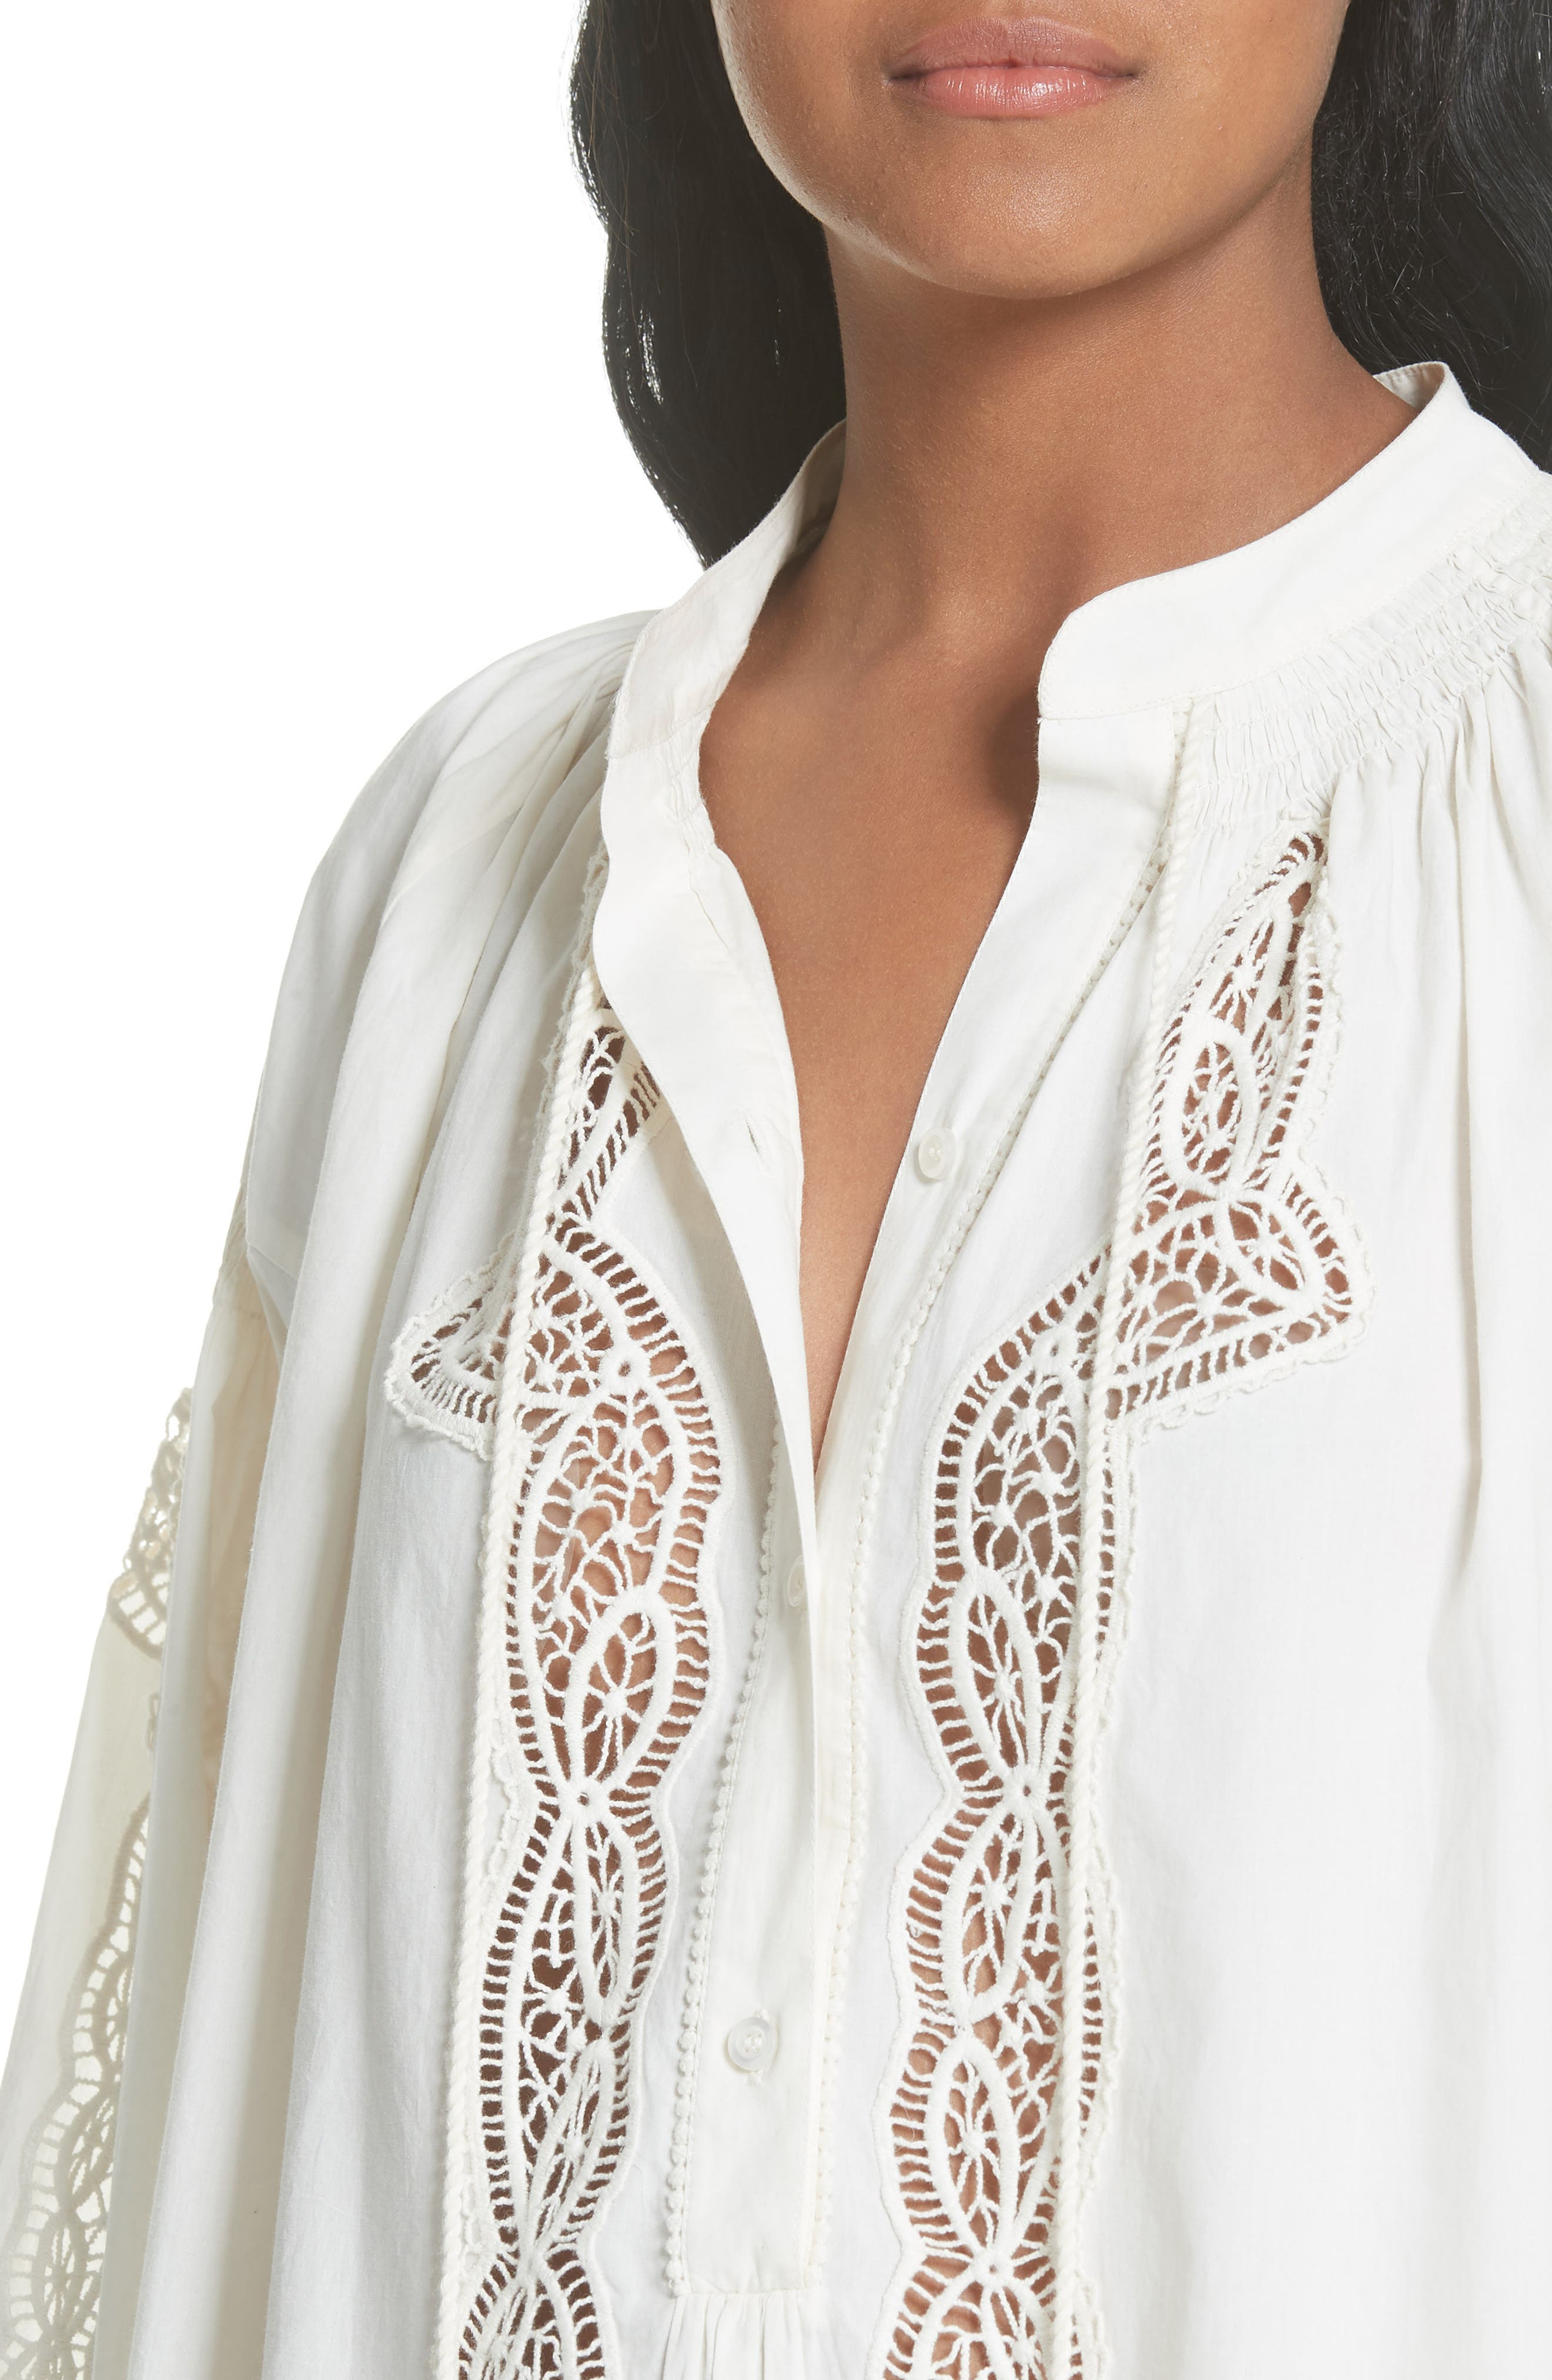 Kimberly Lace Trim Blouse,                             Alternate thumbnail 5, color,                             New Ivory